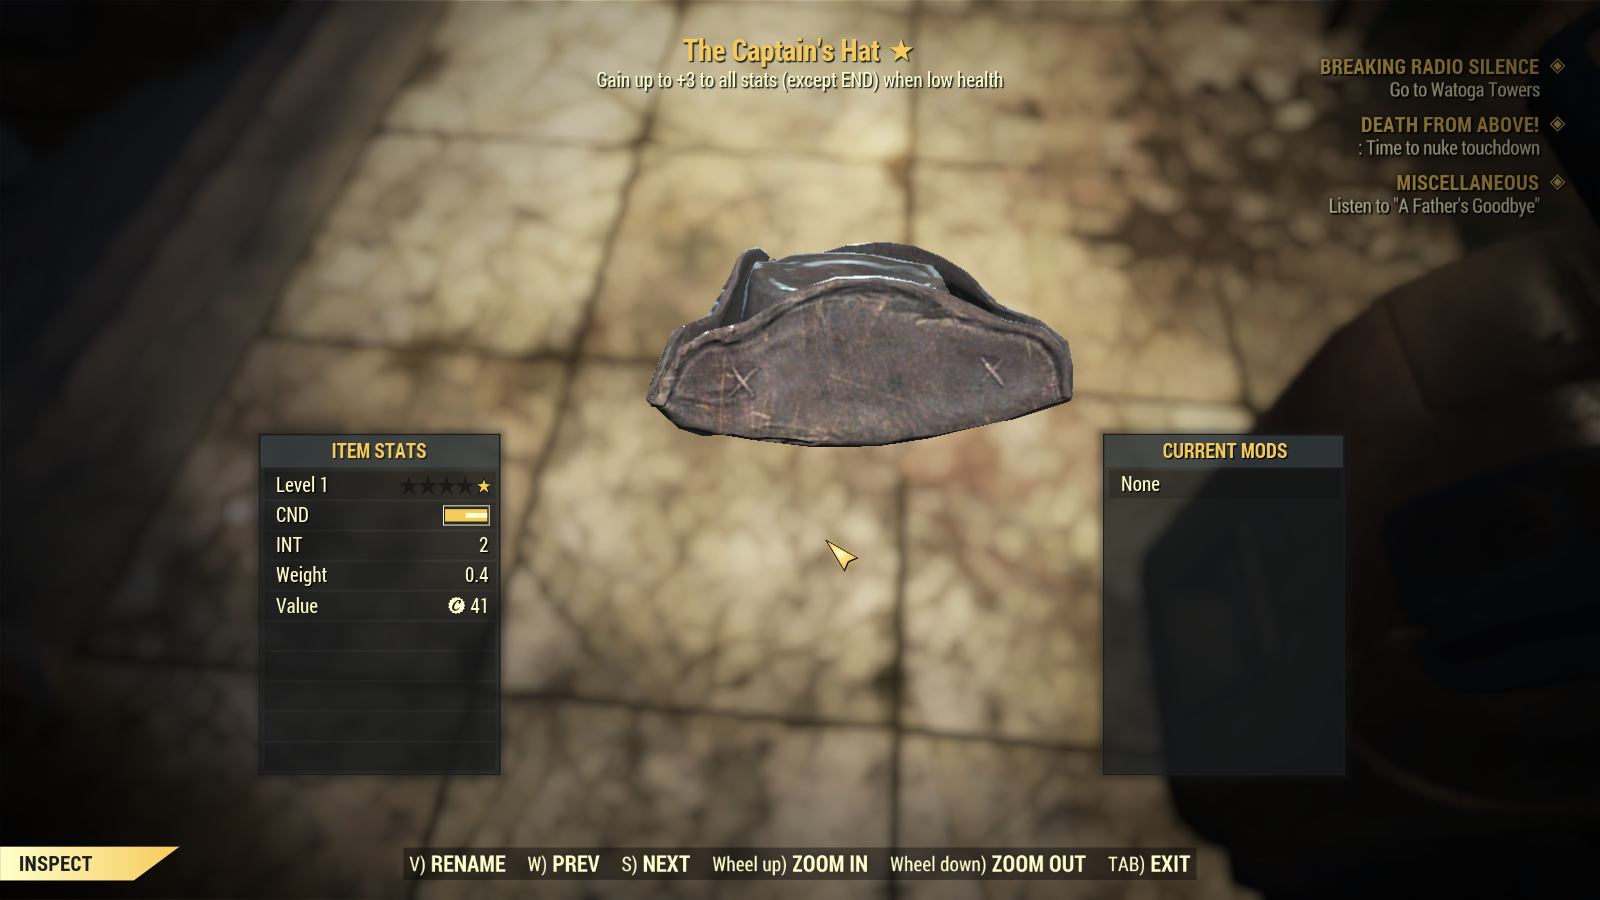 The Captain's Hat [Gain up to +3 to all stats when low health] [Rare Legendary Outfit]